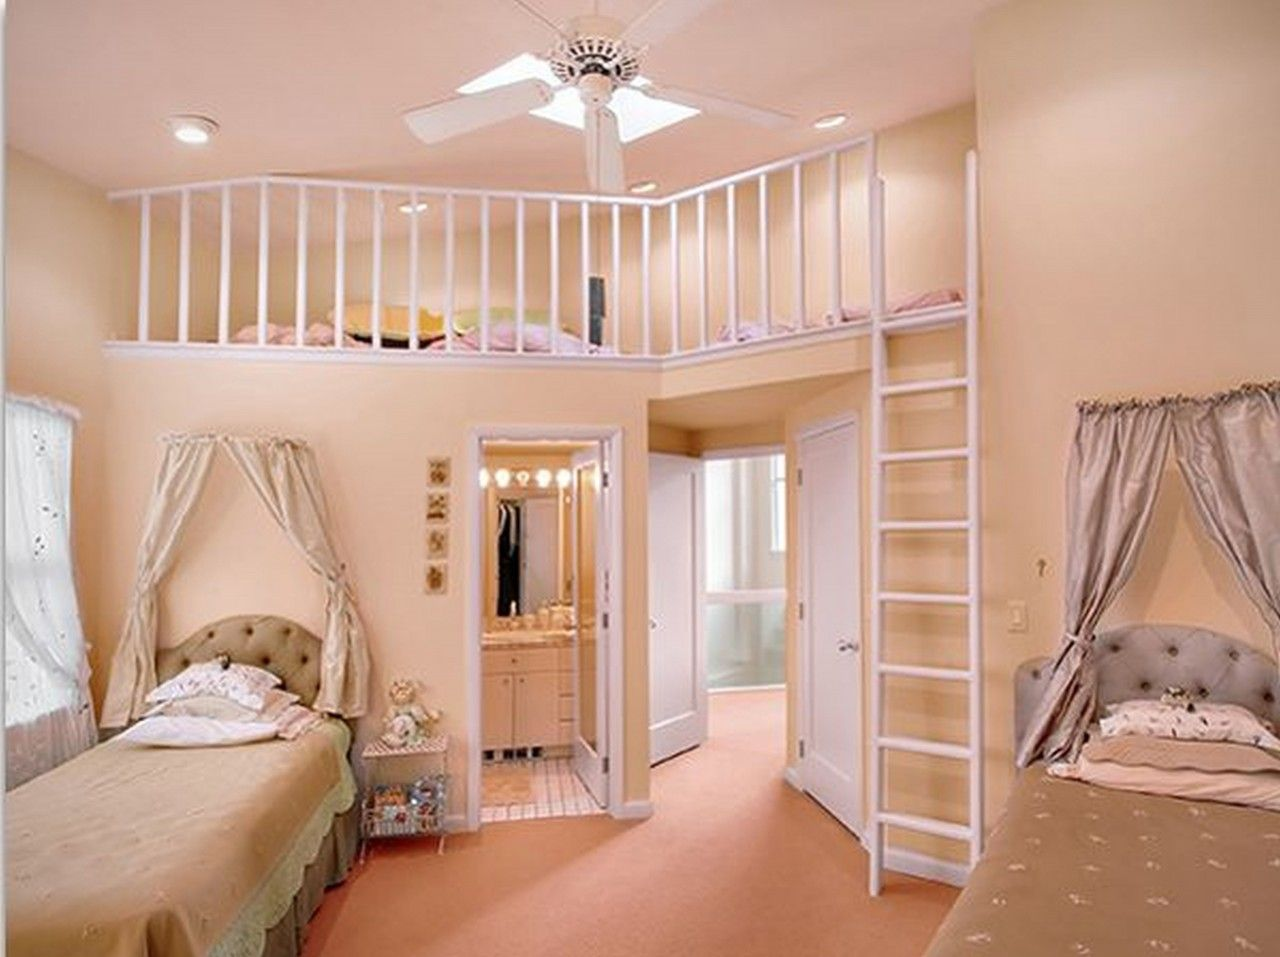 home decor bedroom enchanting split levels room with stairs over single upholstery bed and small closet room ideas in twin teenage girl bedroom ideas fancy